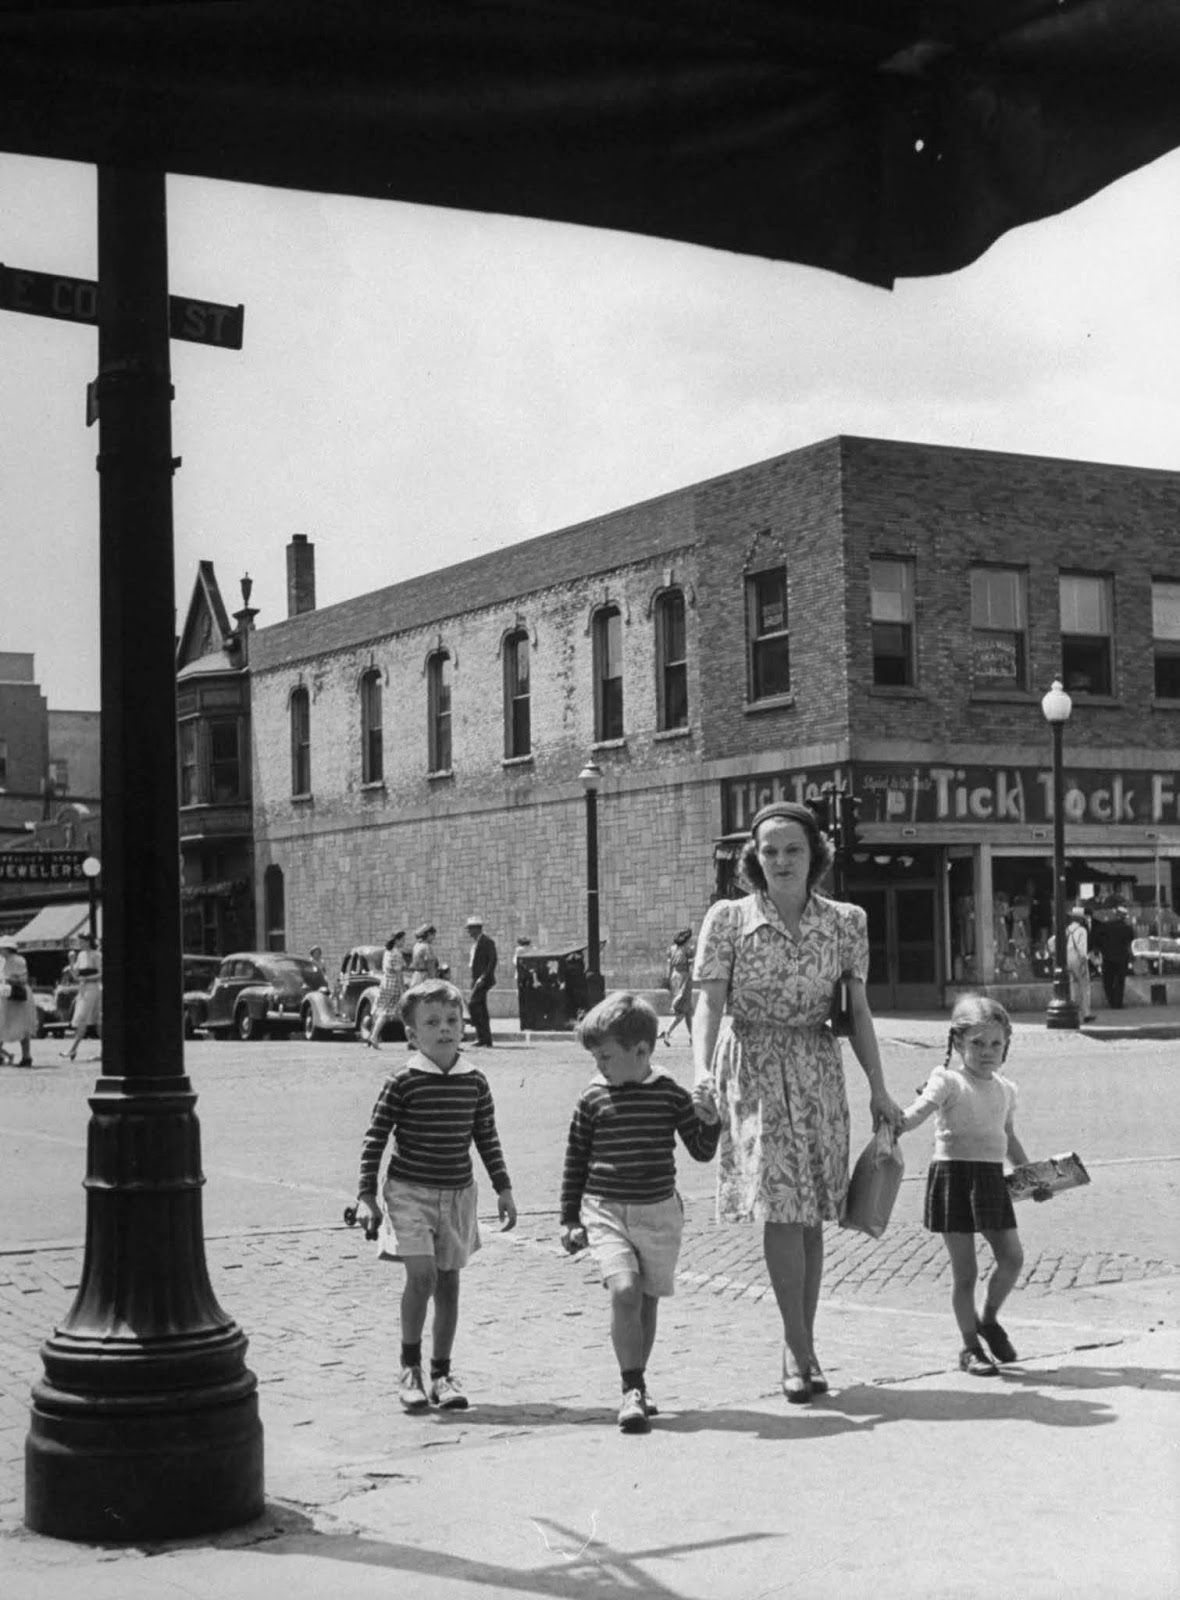 Jane with Peter, Tony and Pamela, as they go to the drugstore to buy ice cream cones, after the boys had haircuts at local barbershop in town.